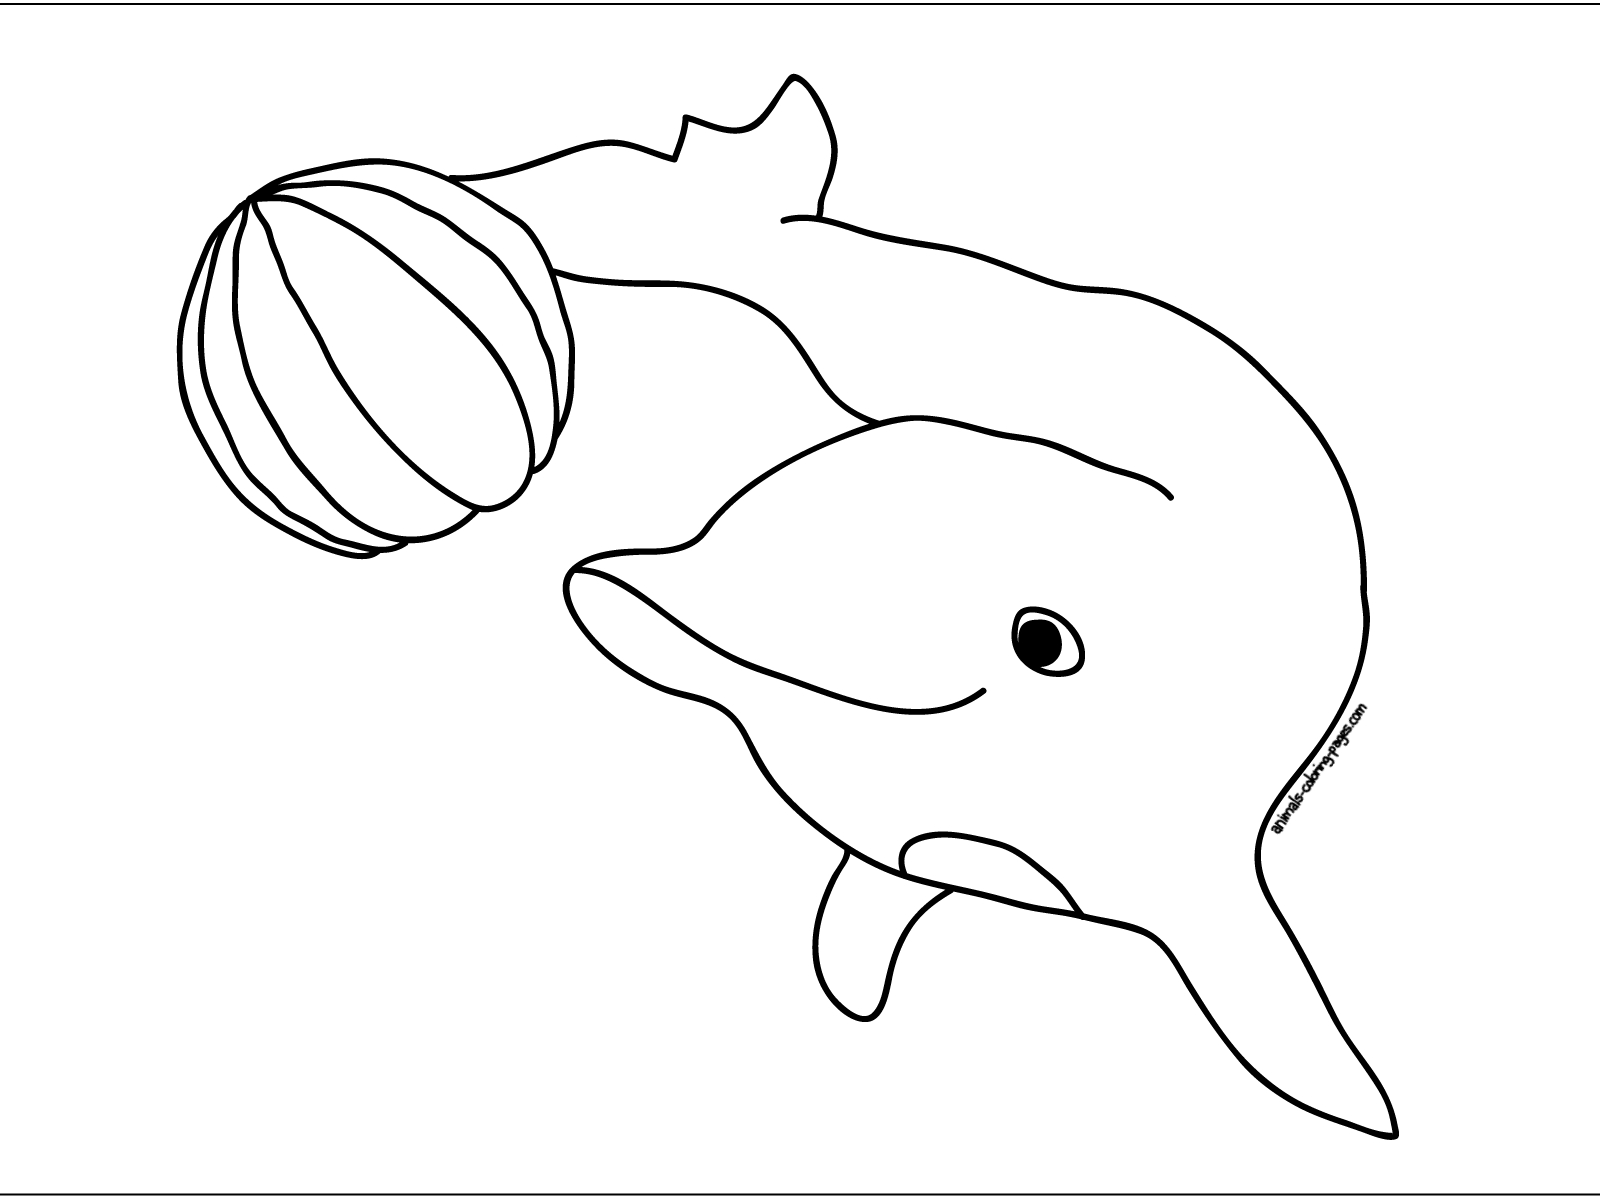 dr seuss coloring pages printable - dolphin coloring pages